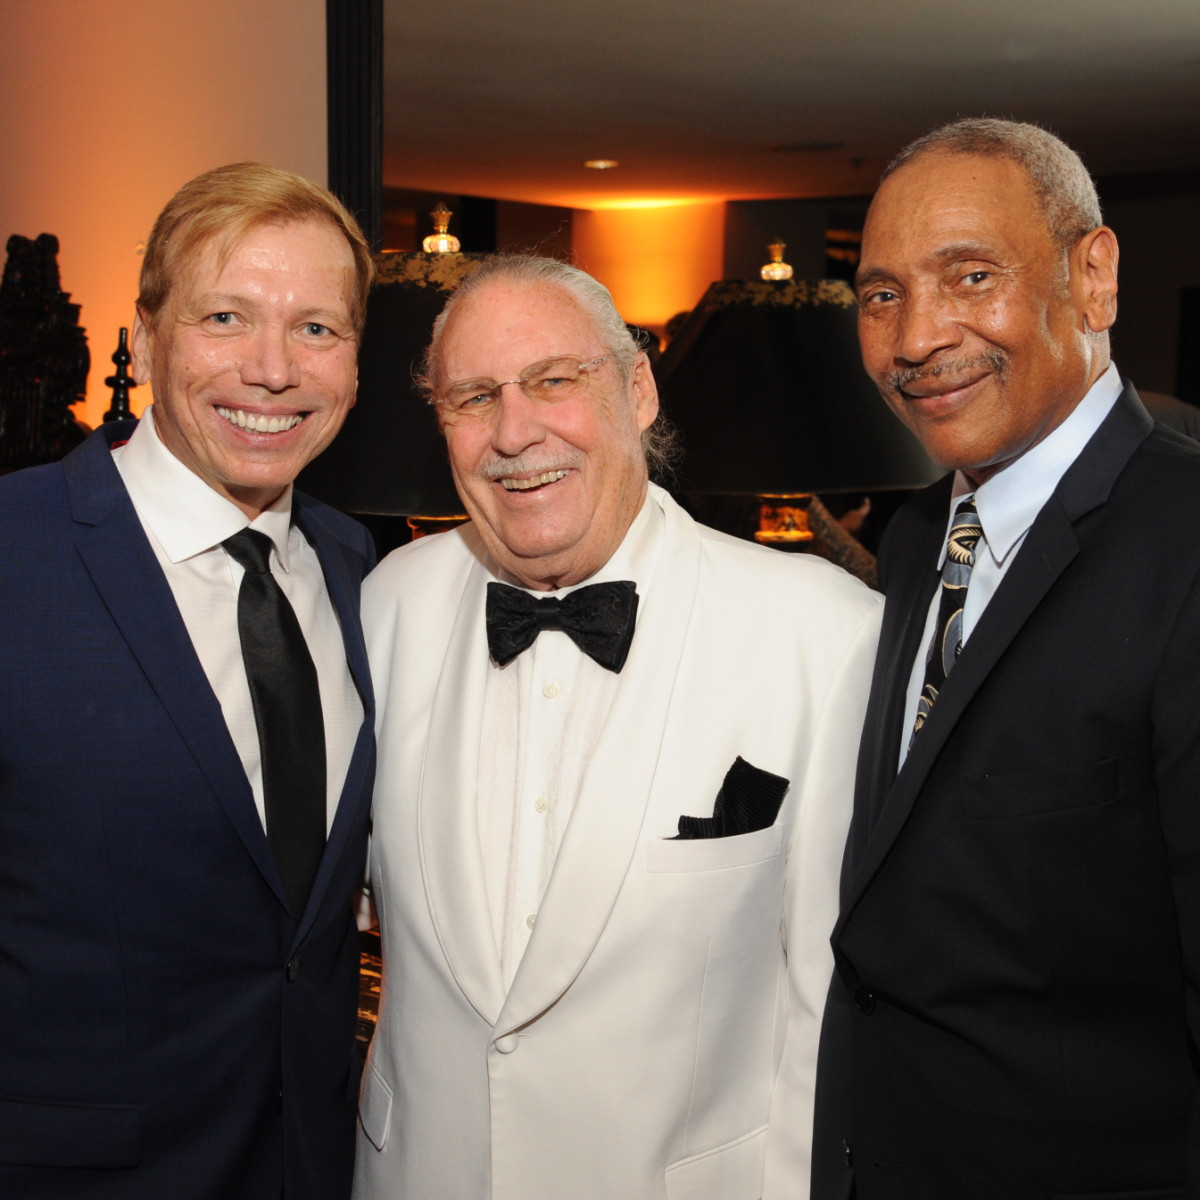 Houston Arts Alliance dinner 5/16, Jonathon Glus, Arthur Baird, John Guess Jr.